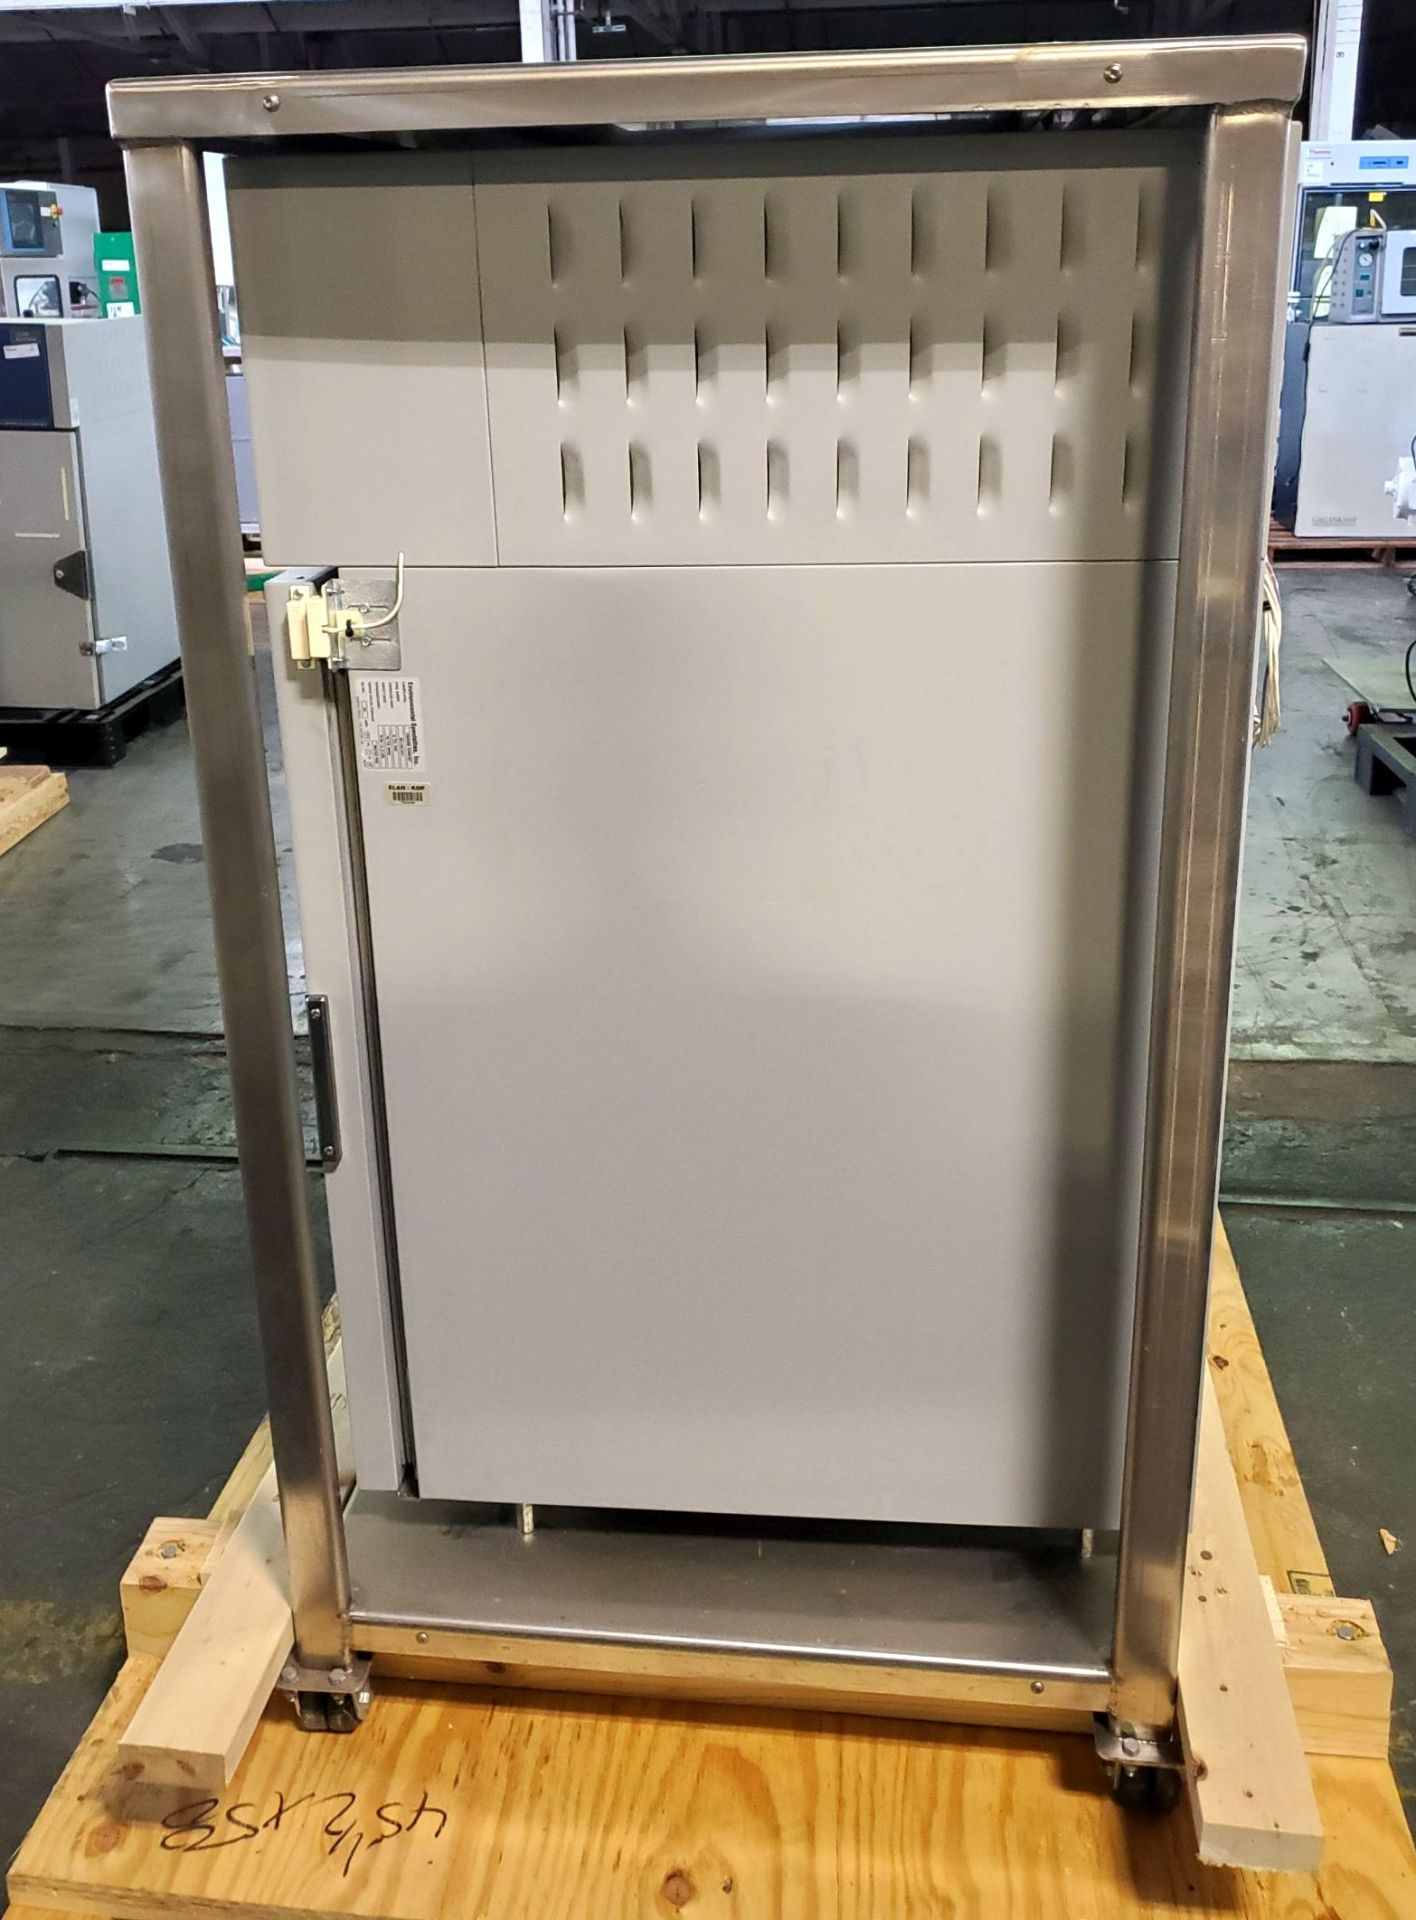 Environmental Specialties Stability Chamber, model ES2000 CDM/BT, 0-70 C and 10-96% humidty range, - Image 3 of 9